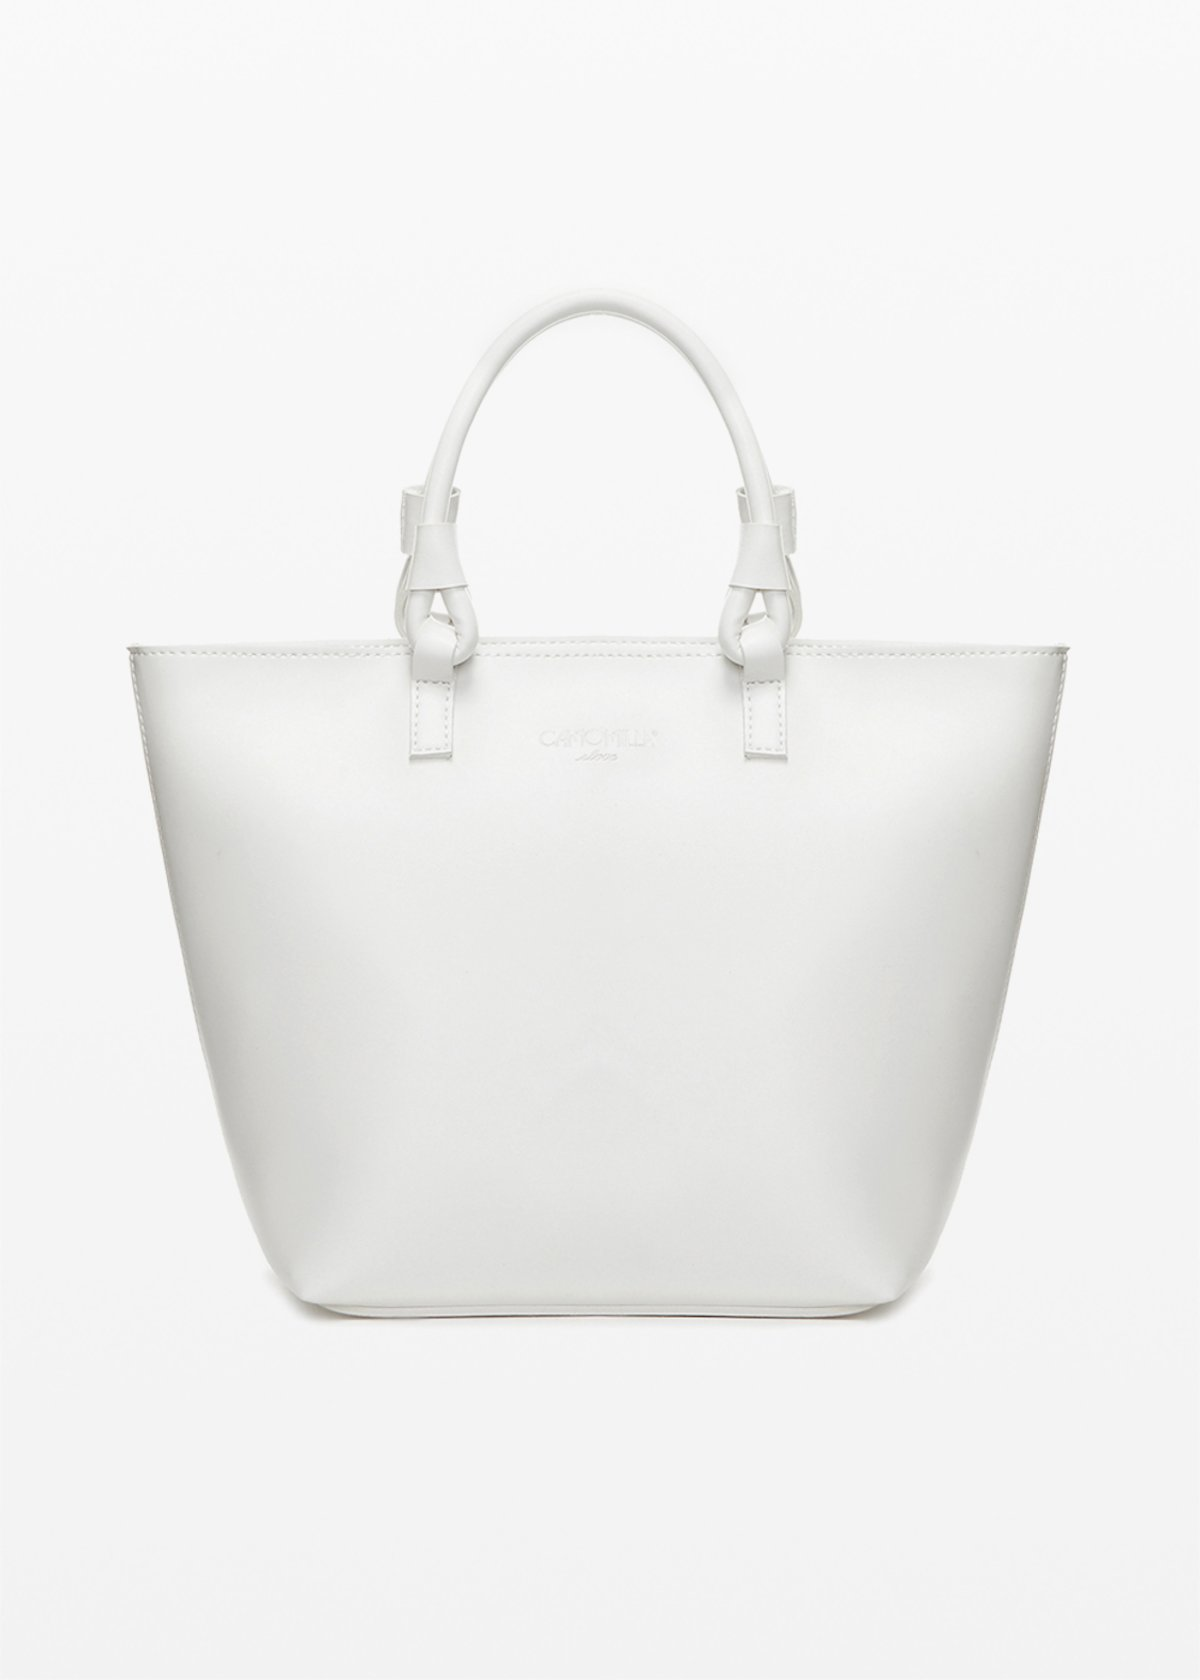 Banna faux leather shopping bag with ring handles - White - Woman